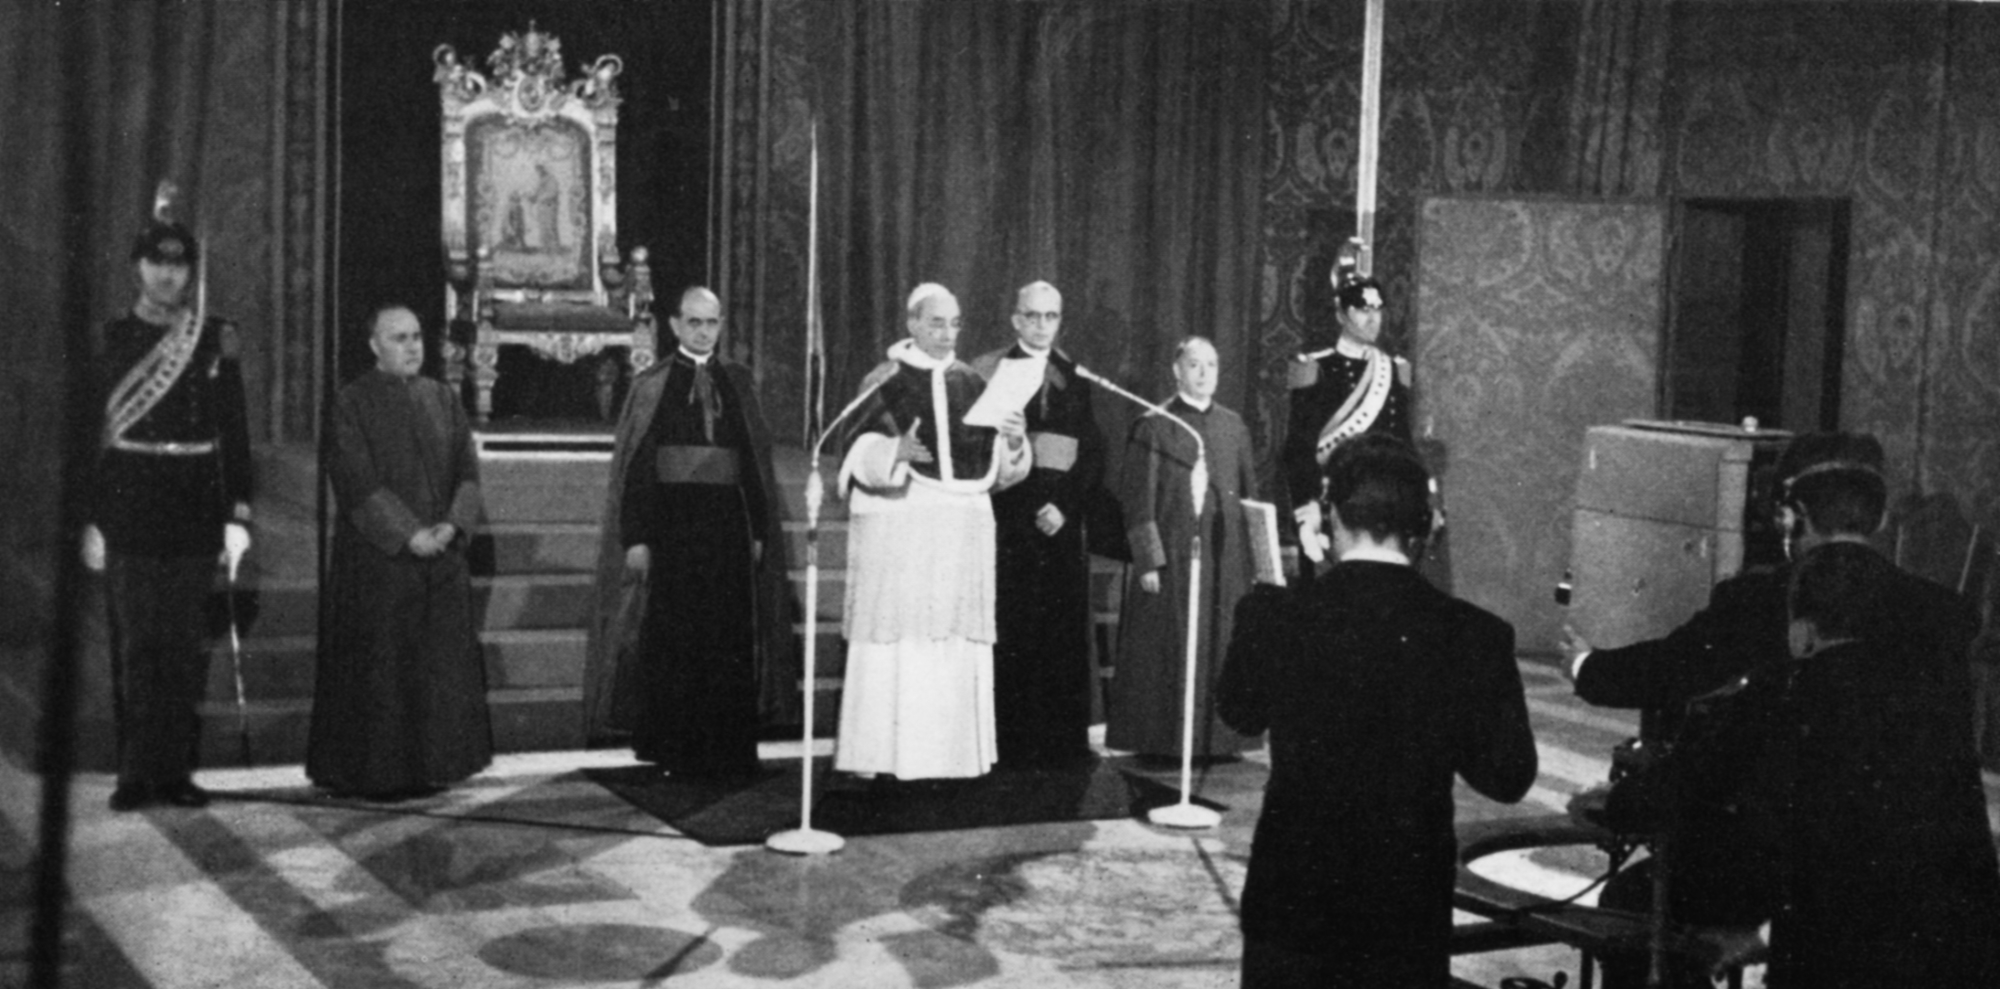 Pope Pius XII reads from a script with two microphones and a camera in front of him